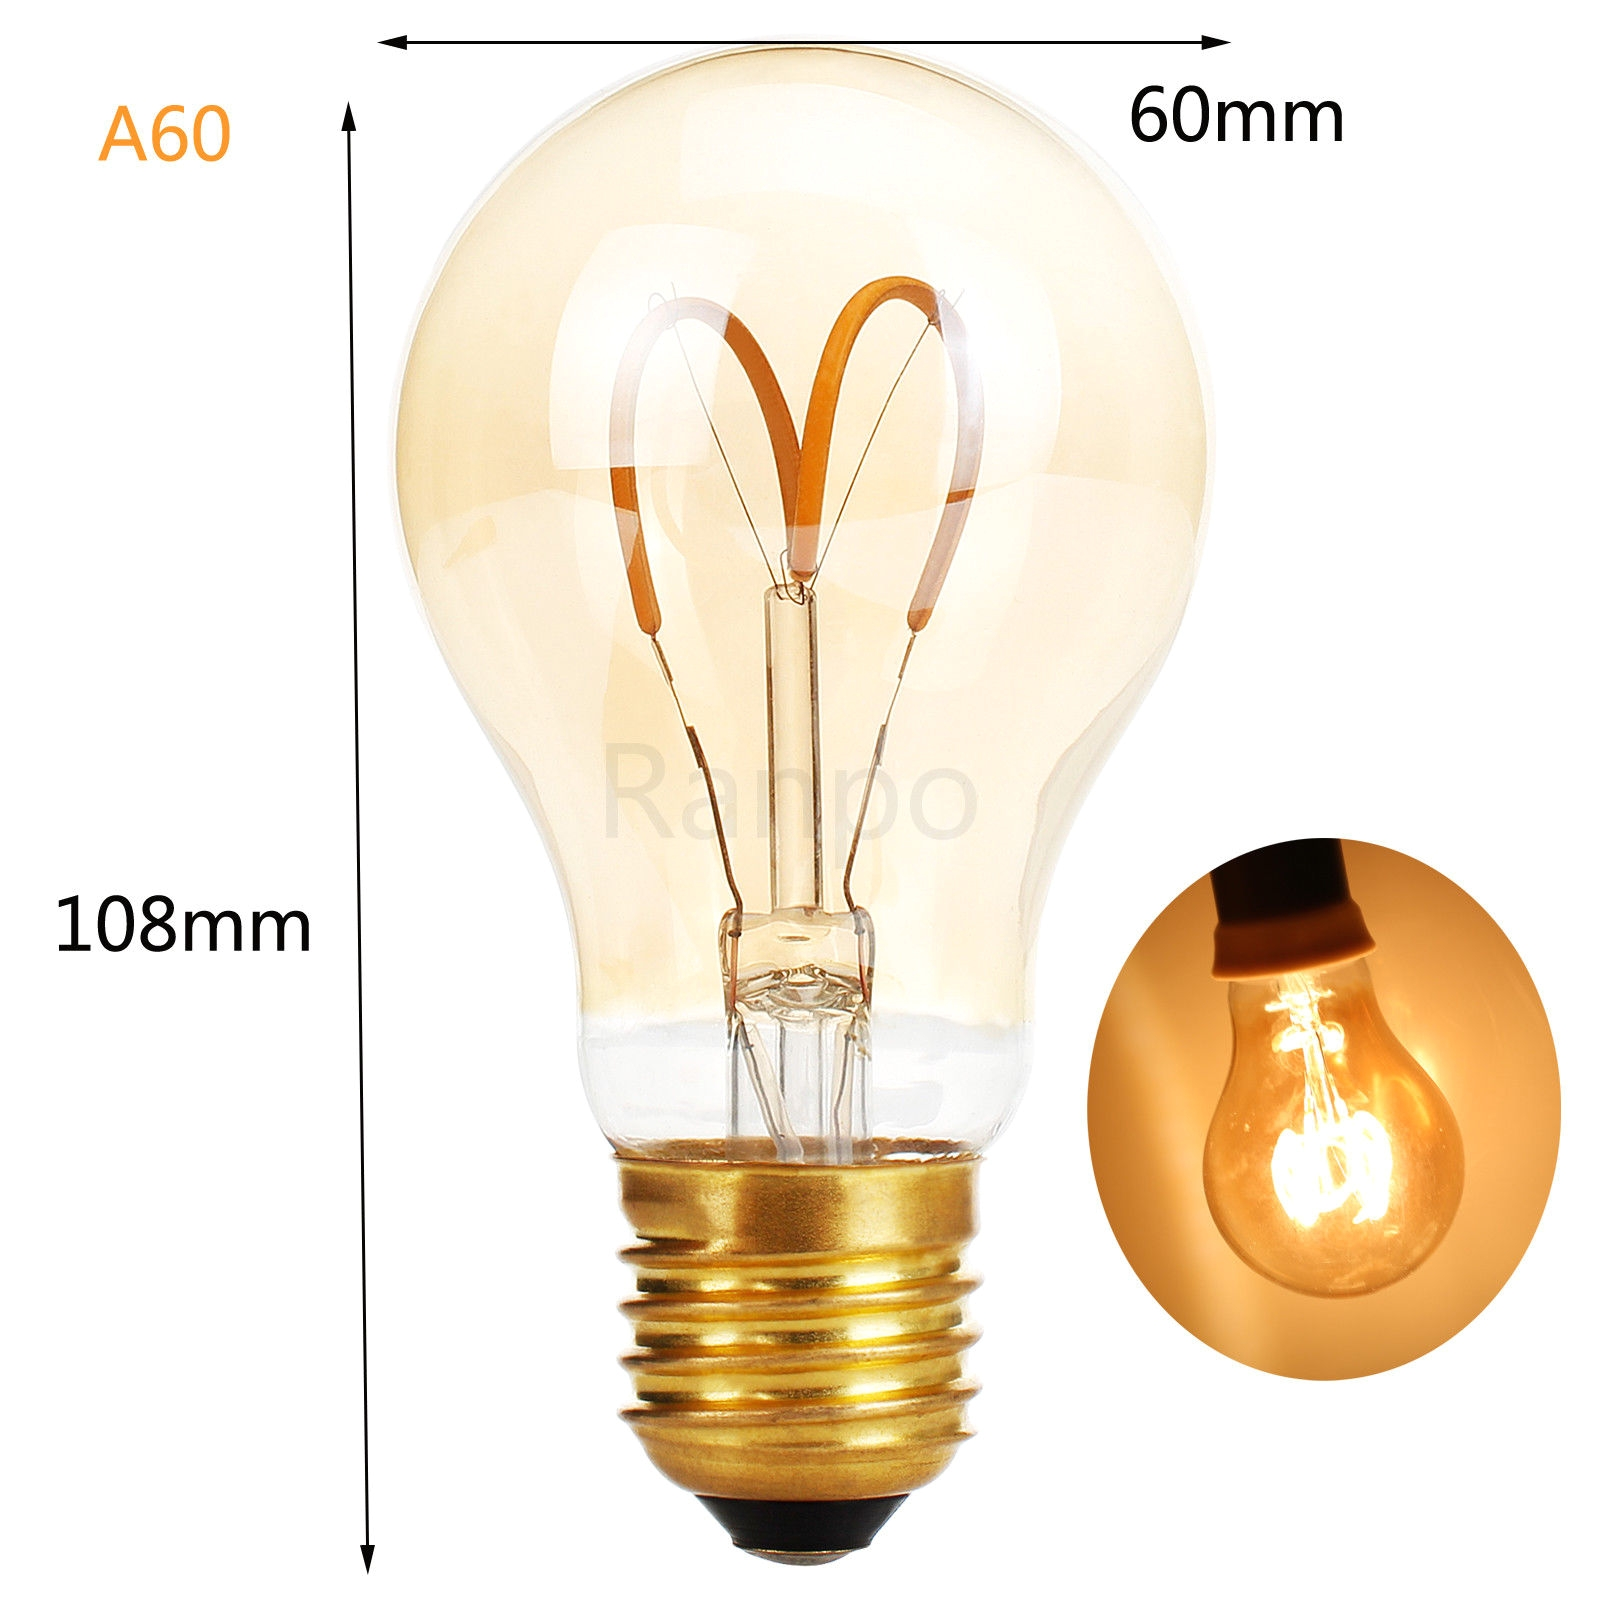 e27 e14 led light bulb lamp vintage retro